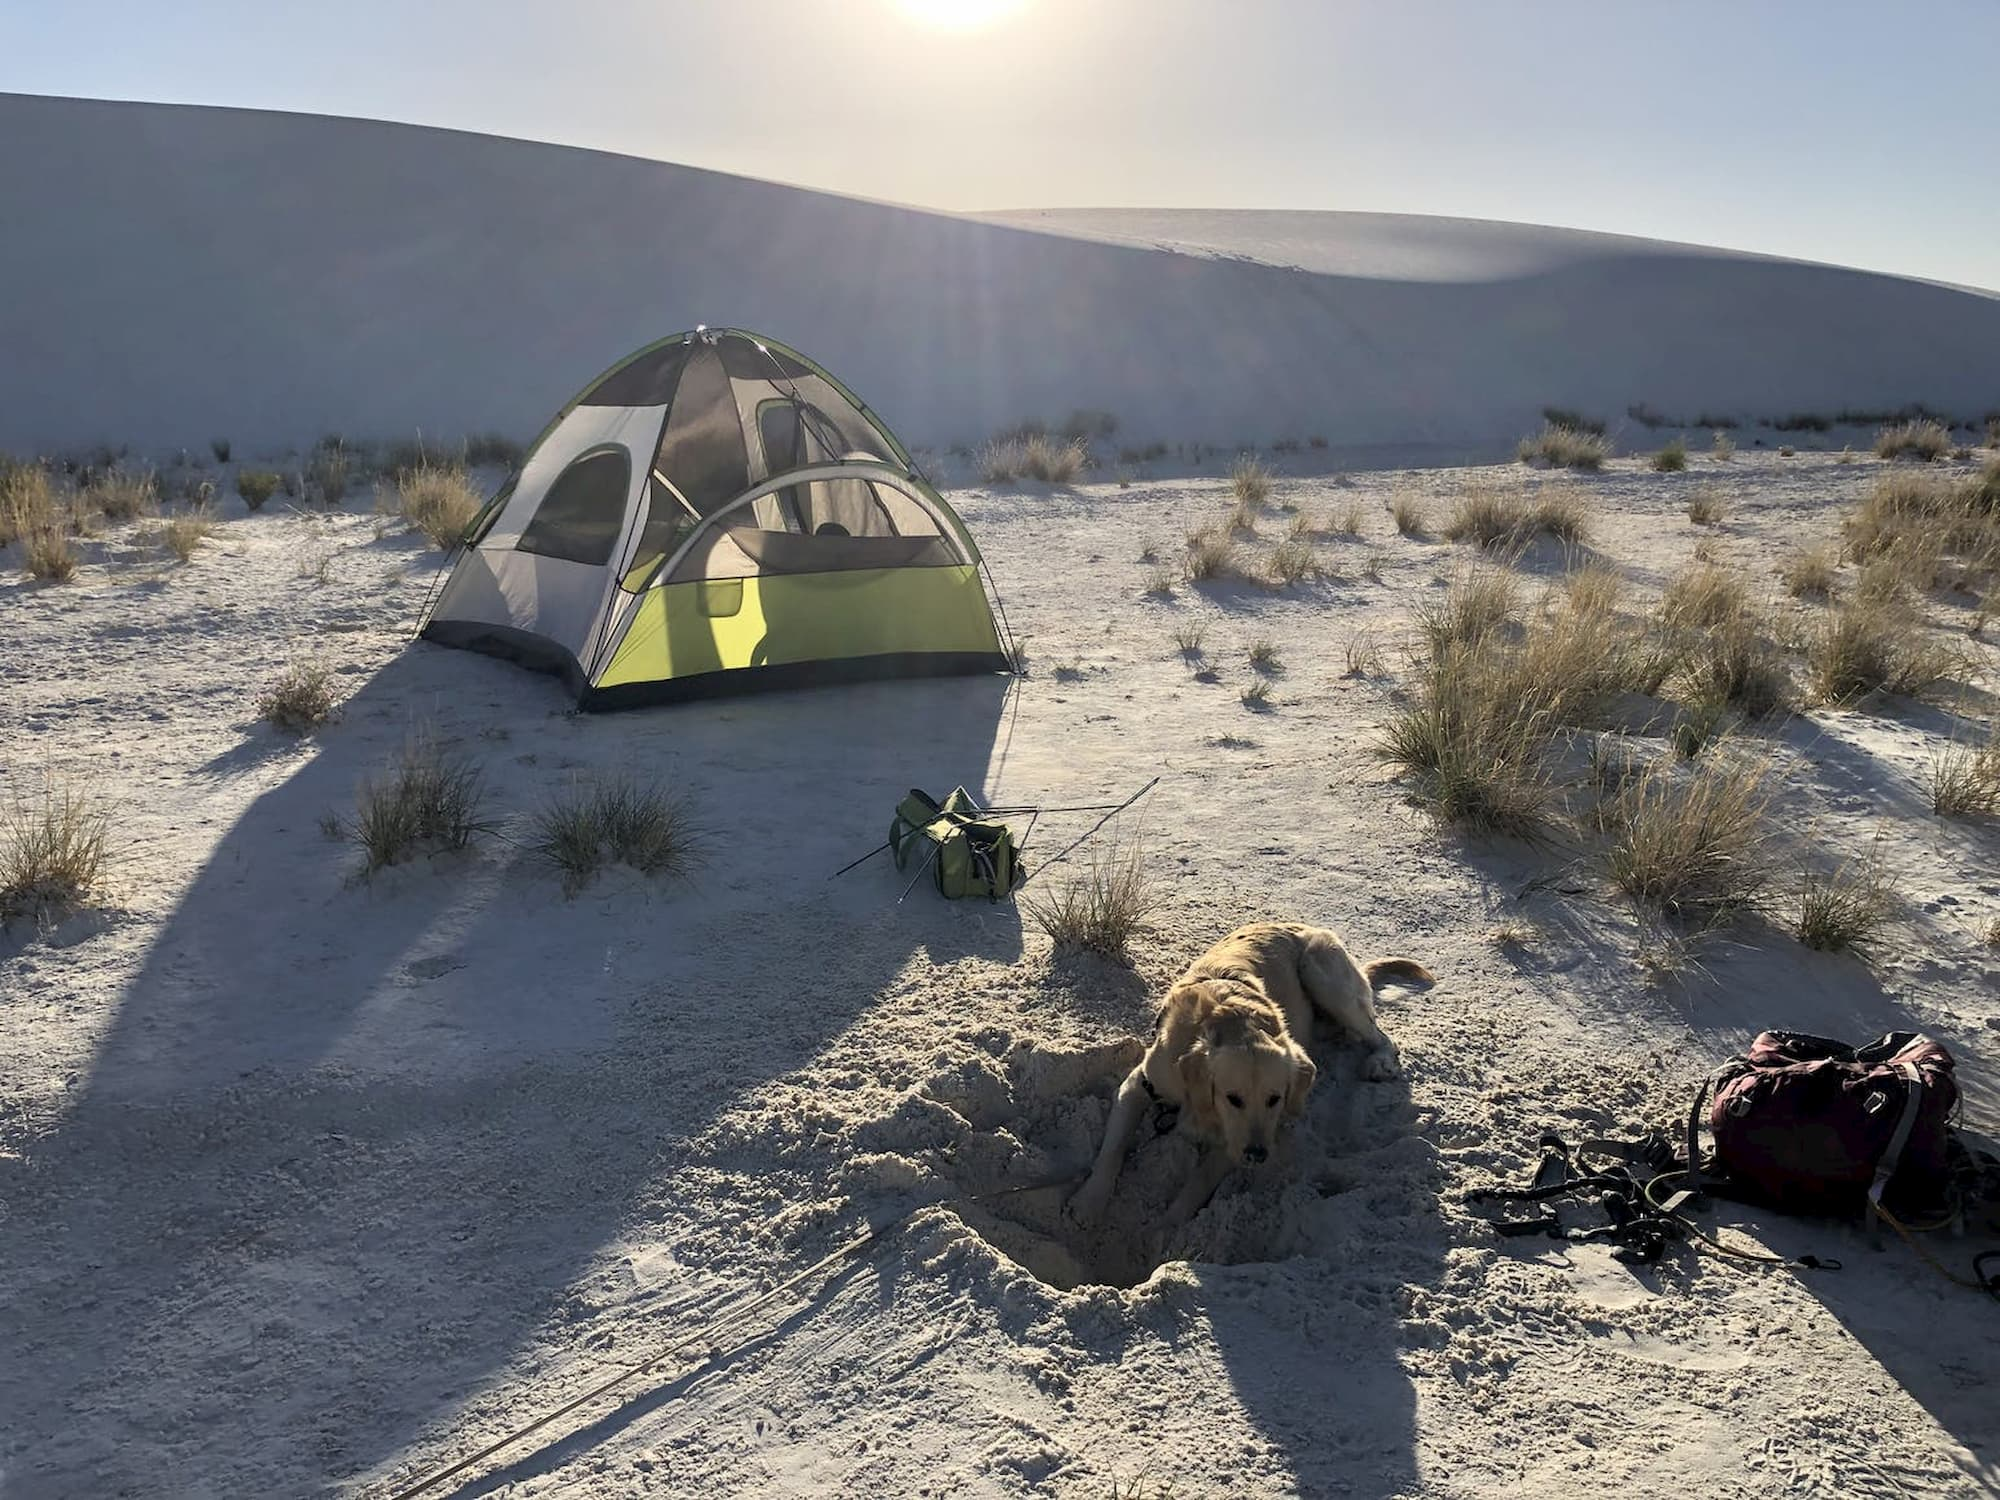 Green tent in front of white sand dune with a golden retriever lying next to it.